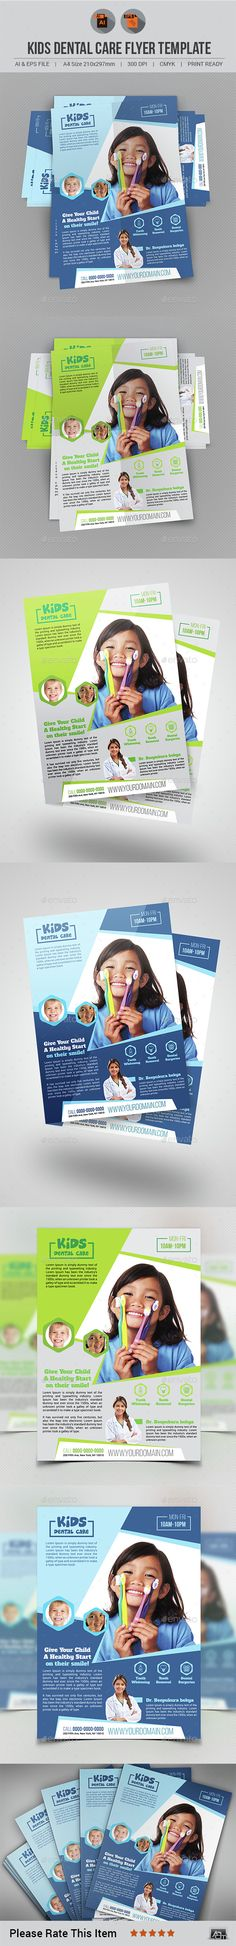 Kids Dental Care Flyer